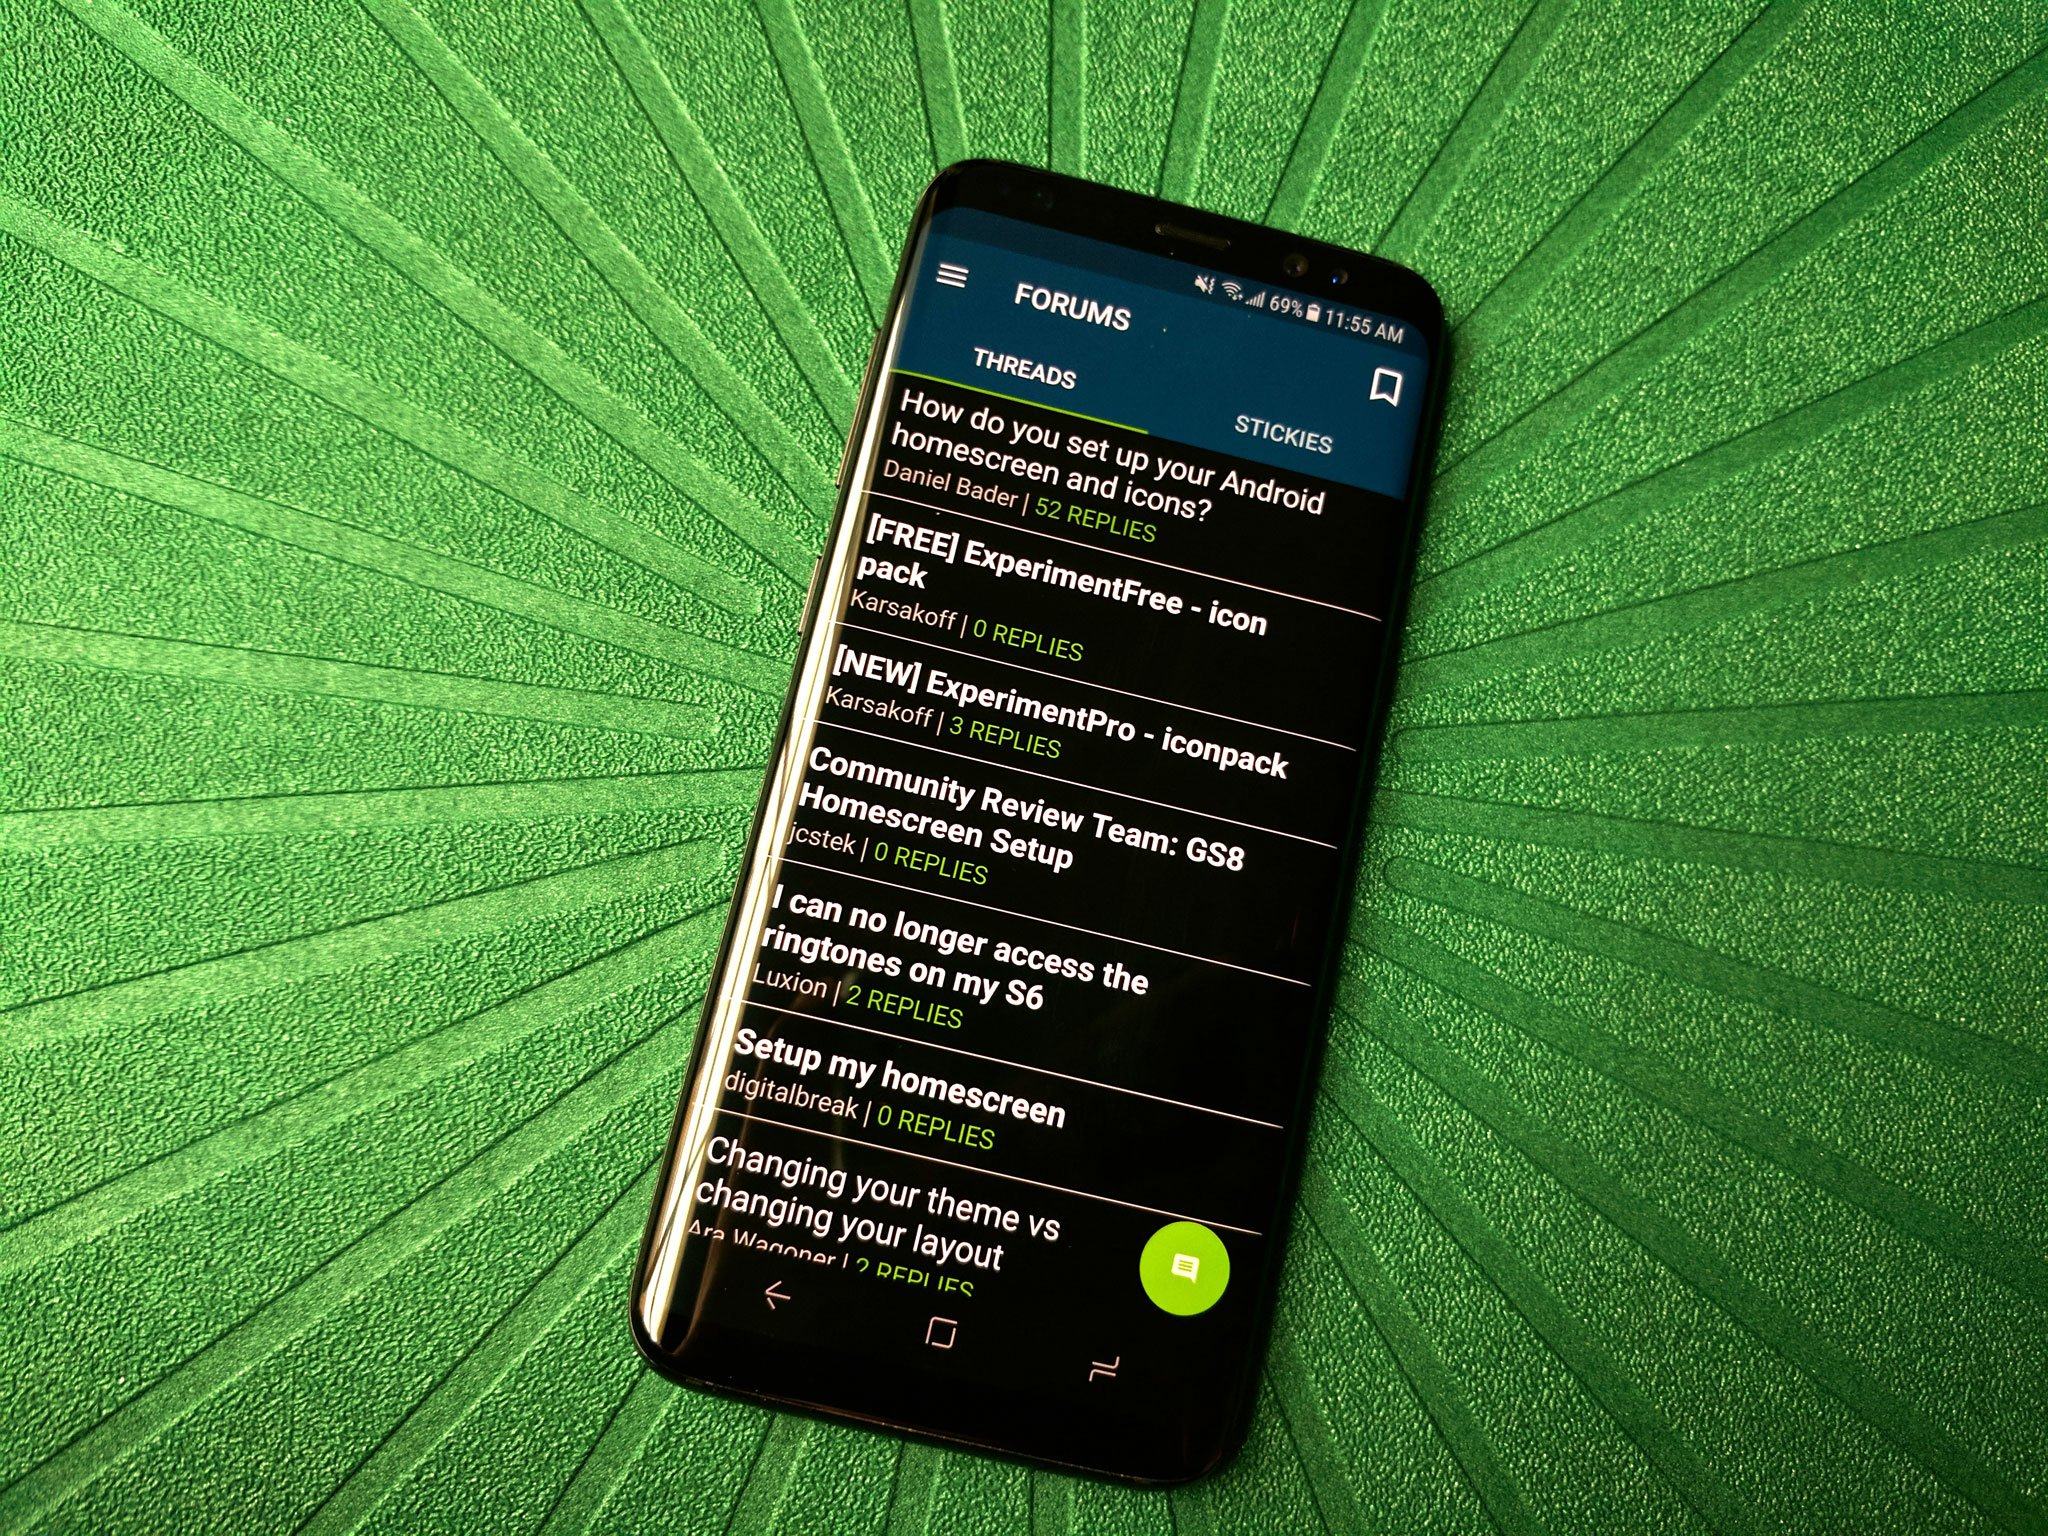 Android Wallpaper For Mobile How To Find The Best Wallpapers For Android Android Central